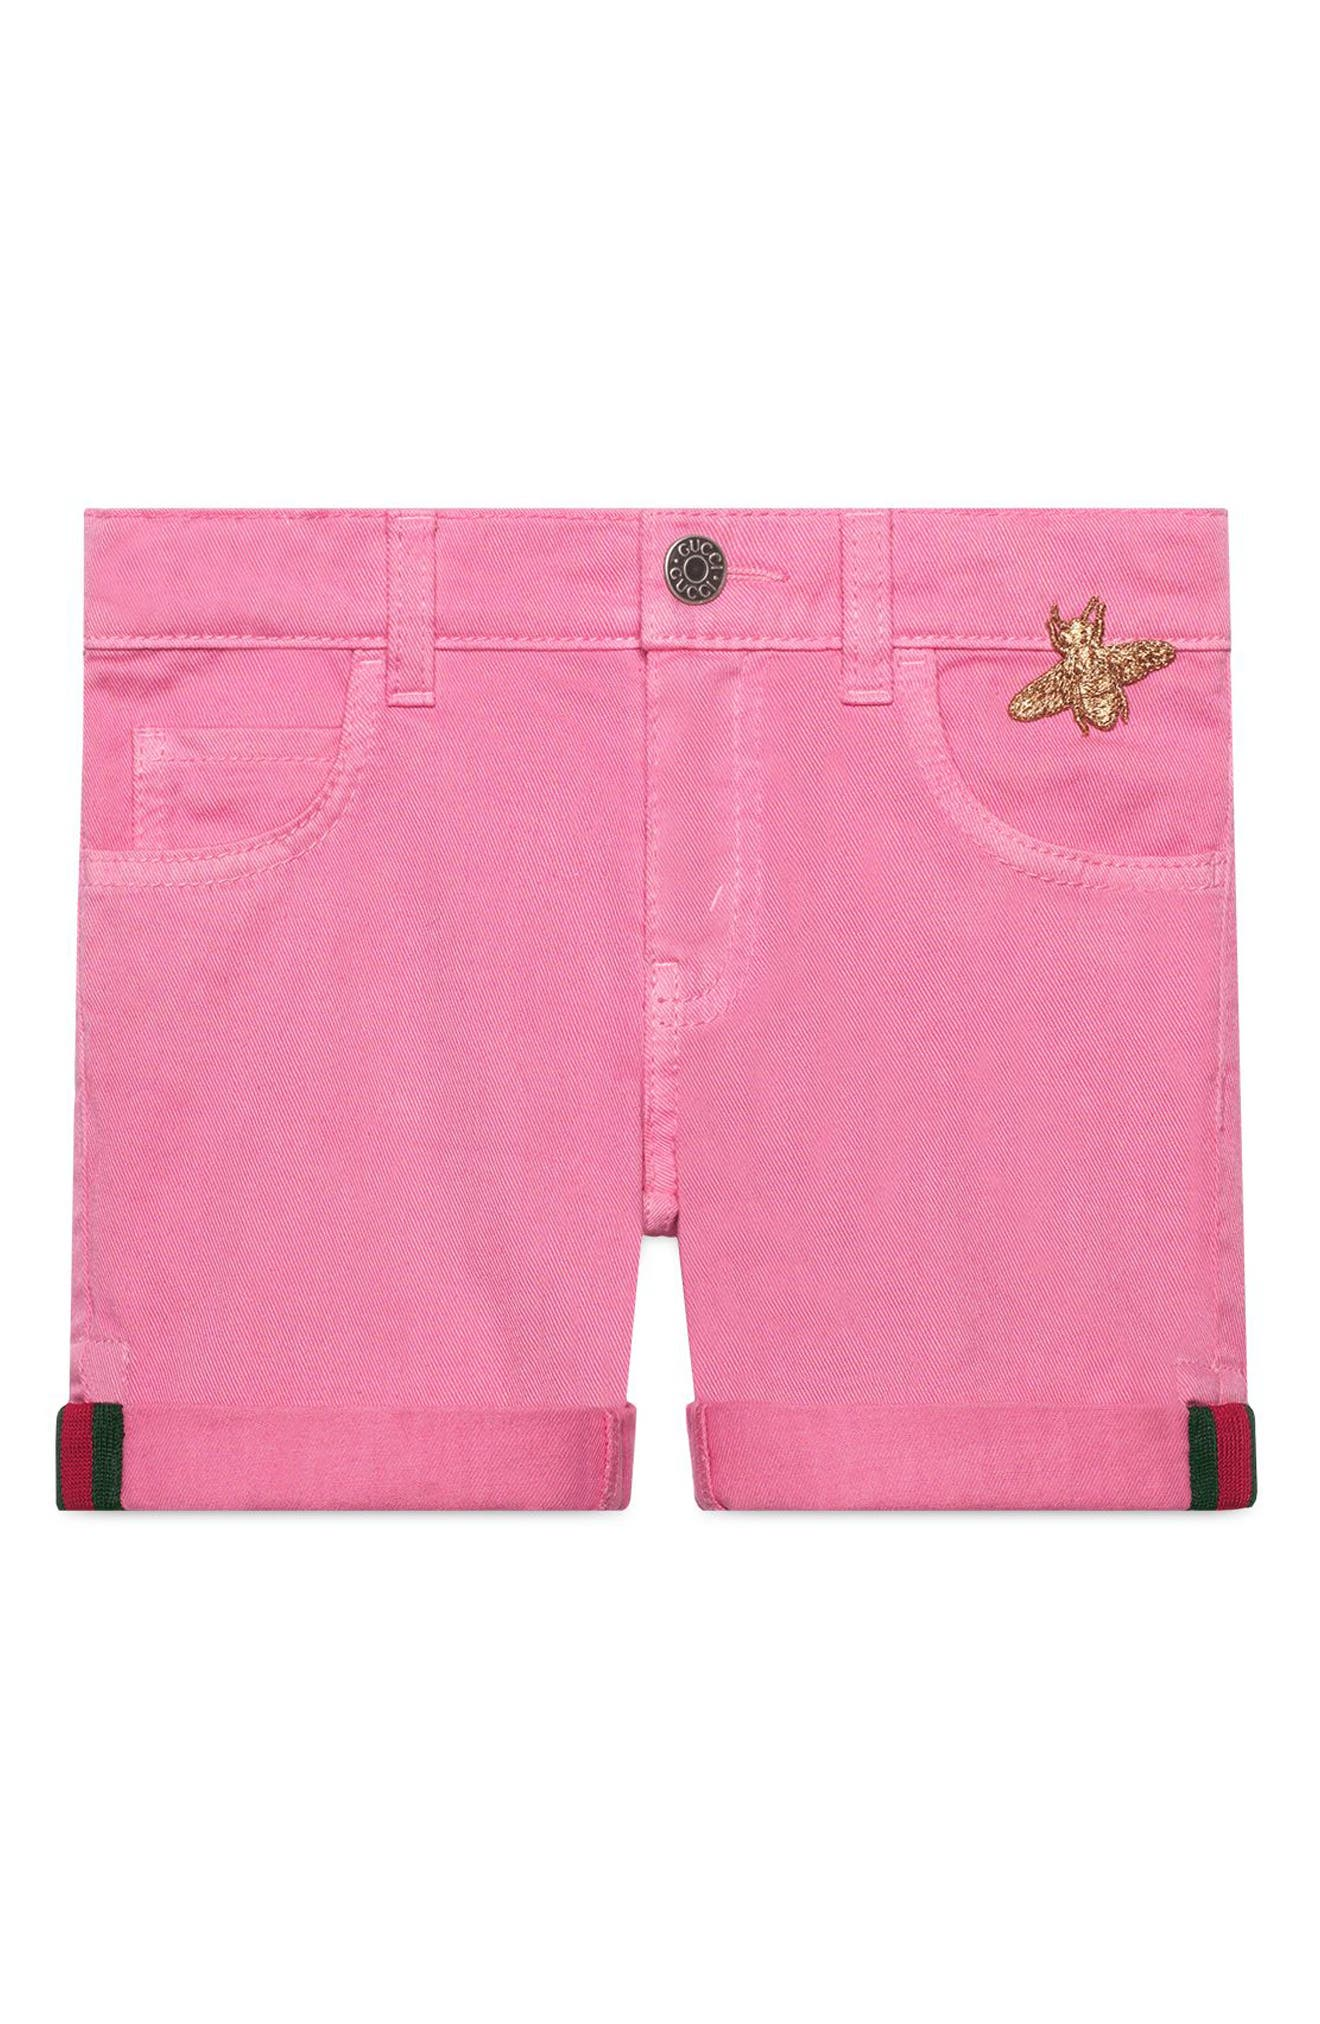 Pink Denim Cuffed Shorts,                         Main,                         color, Copper/ Rose